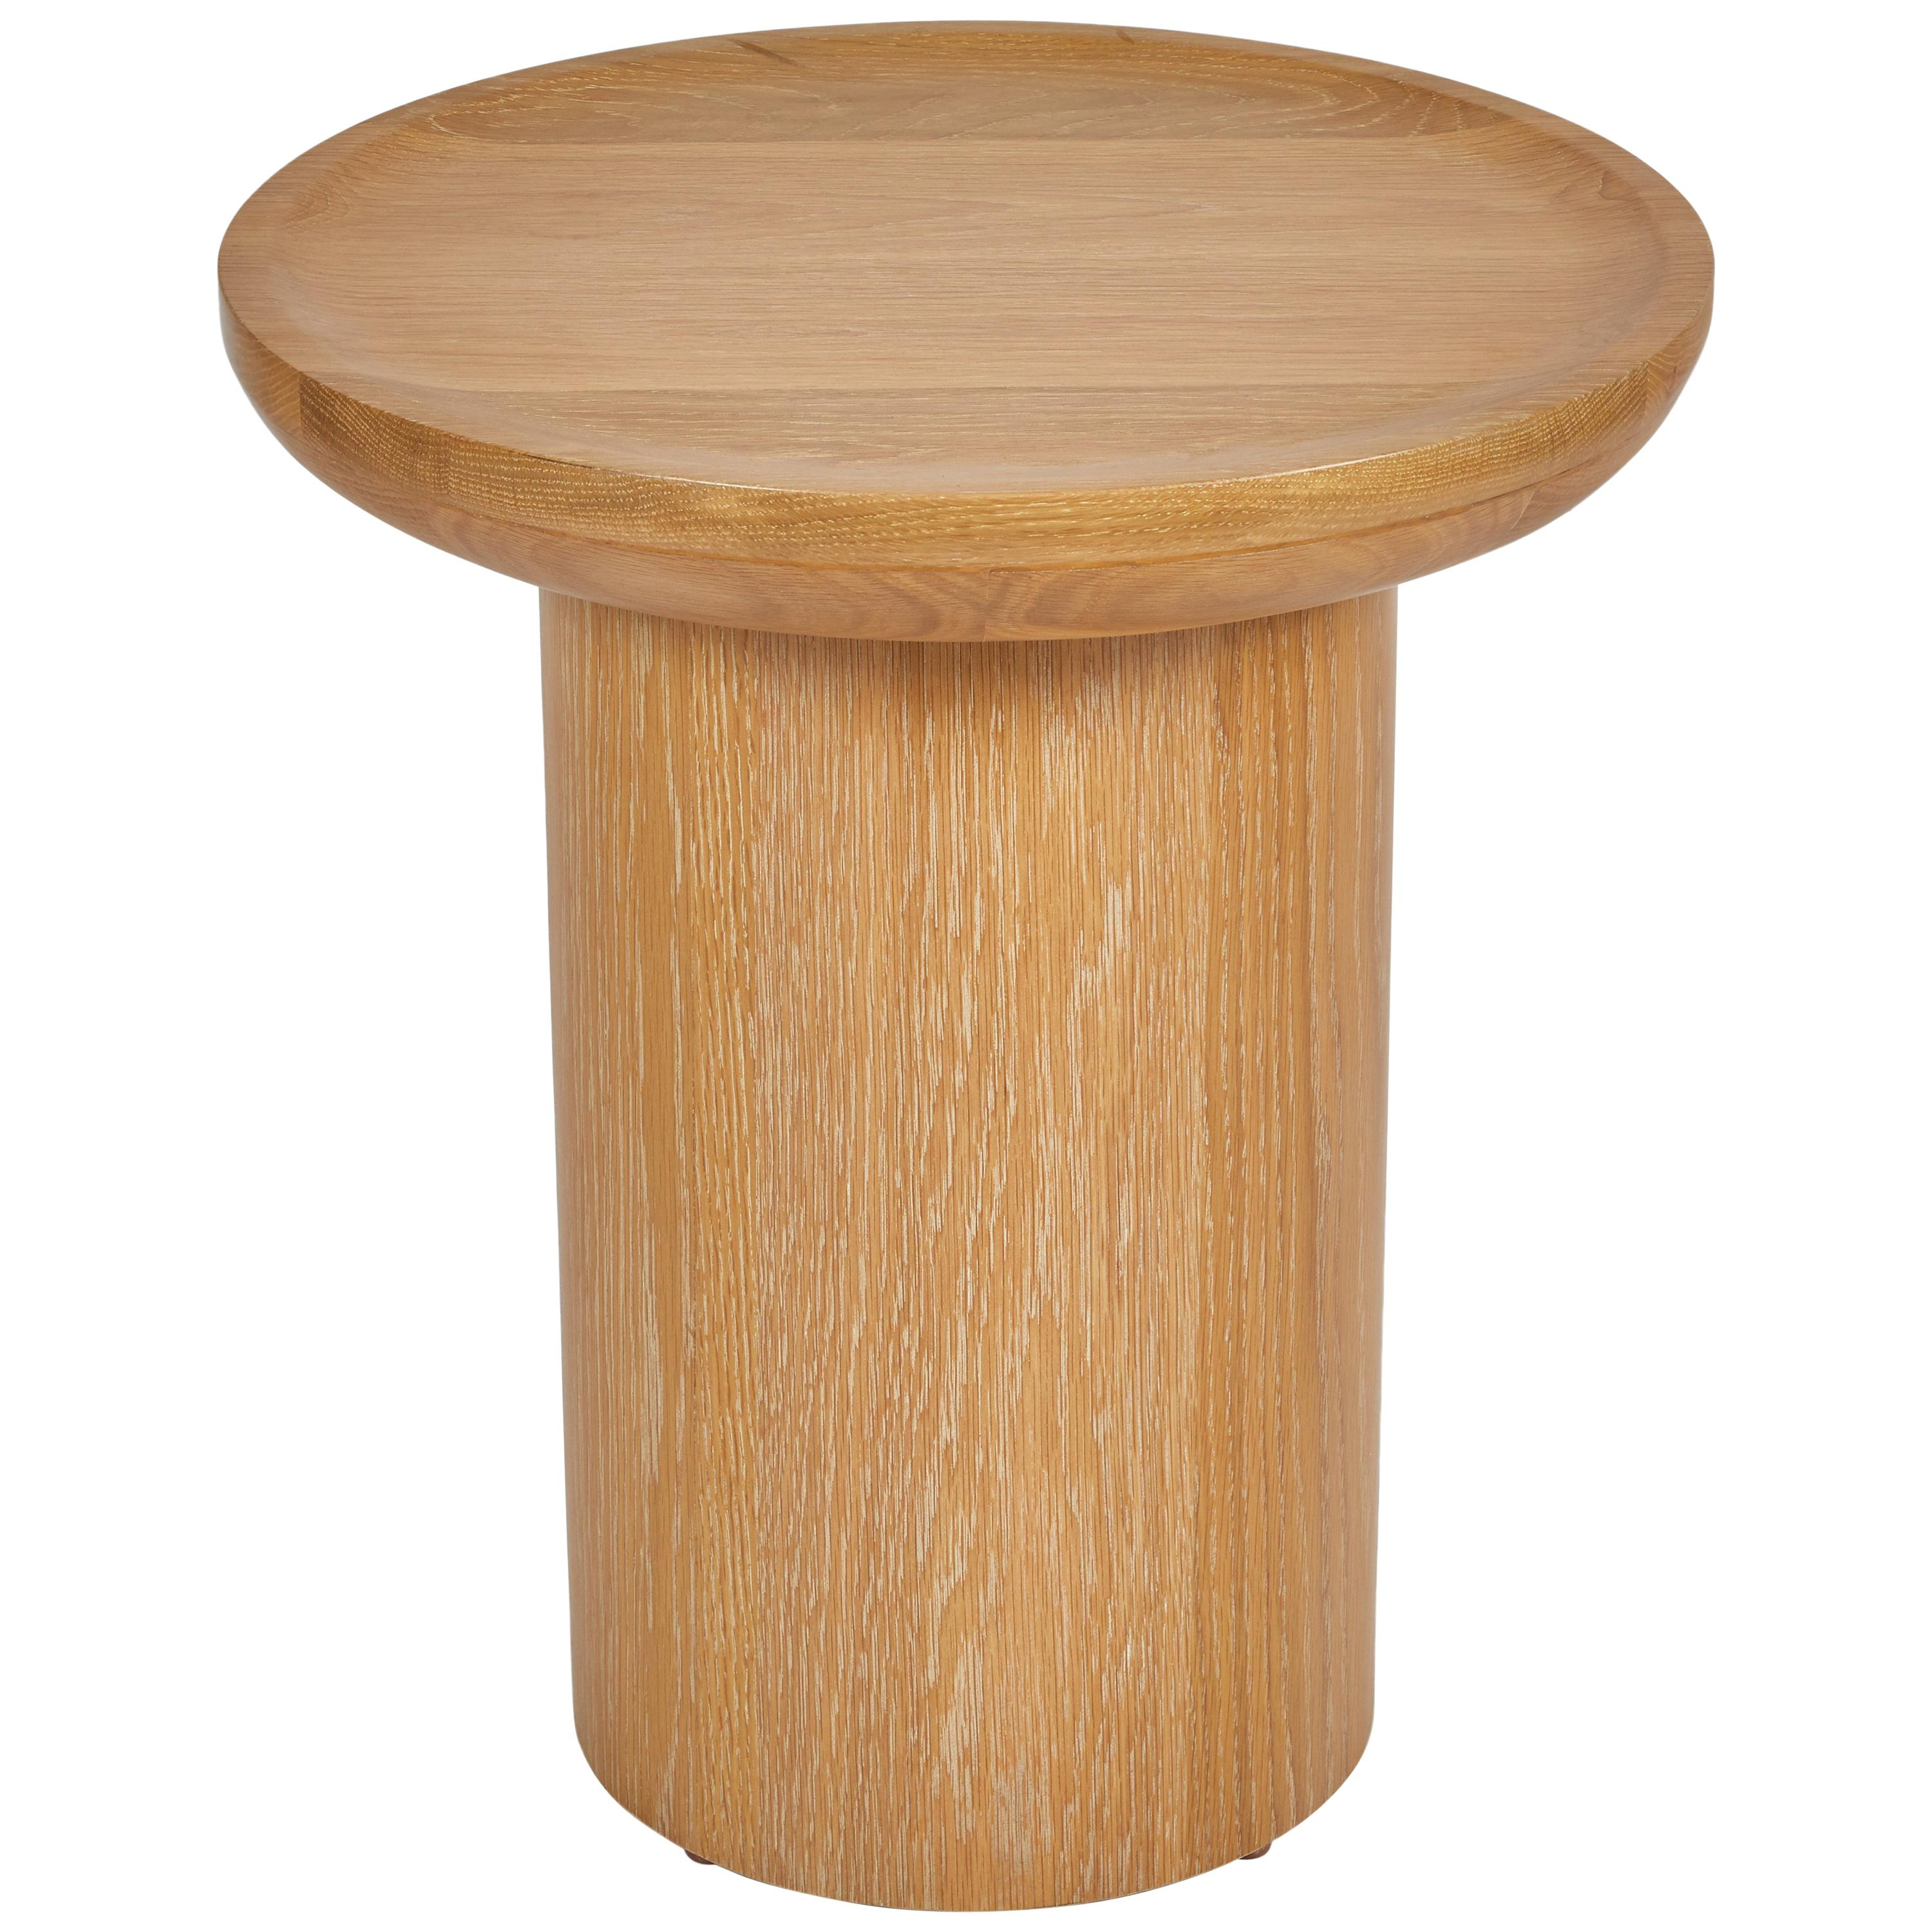 Tall Round Side Table,  Pedestal Base, Cerused Oak by Martin and Brockett, Brown